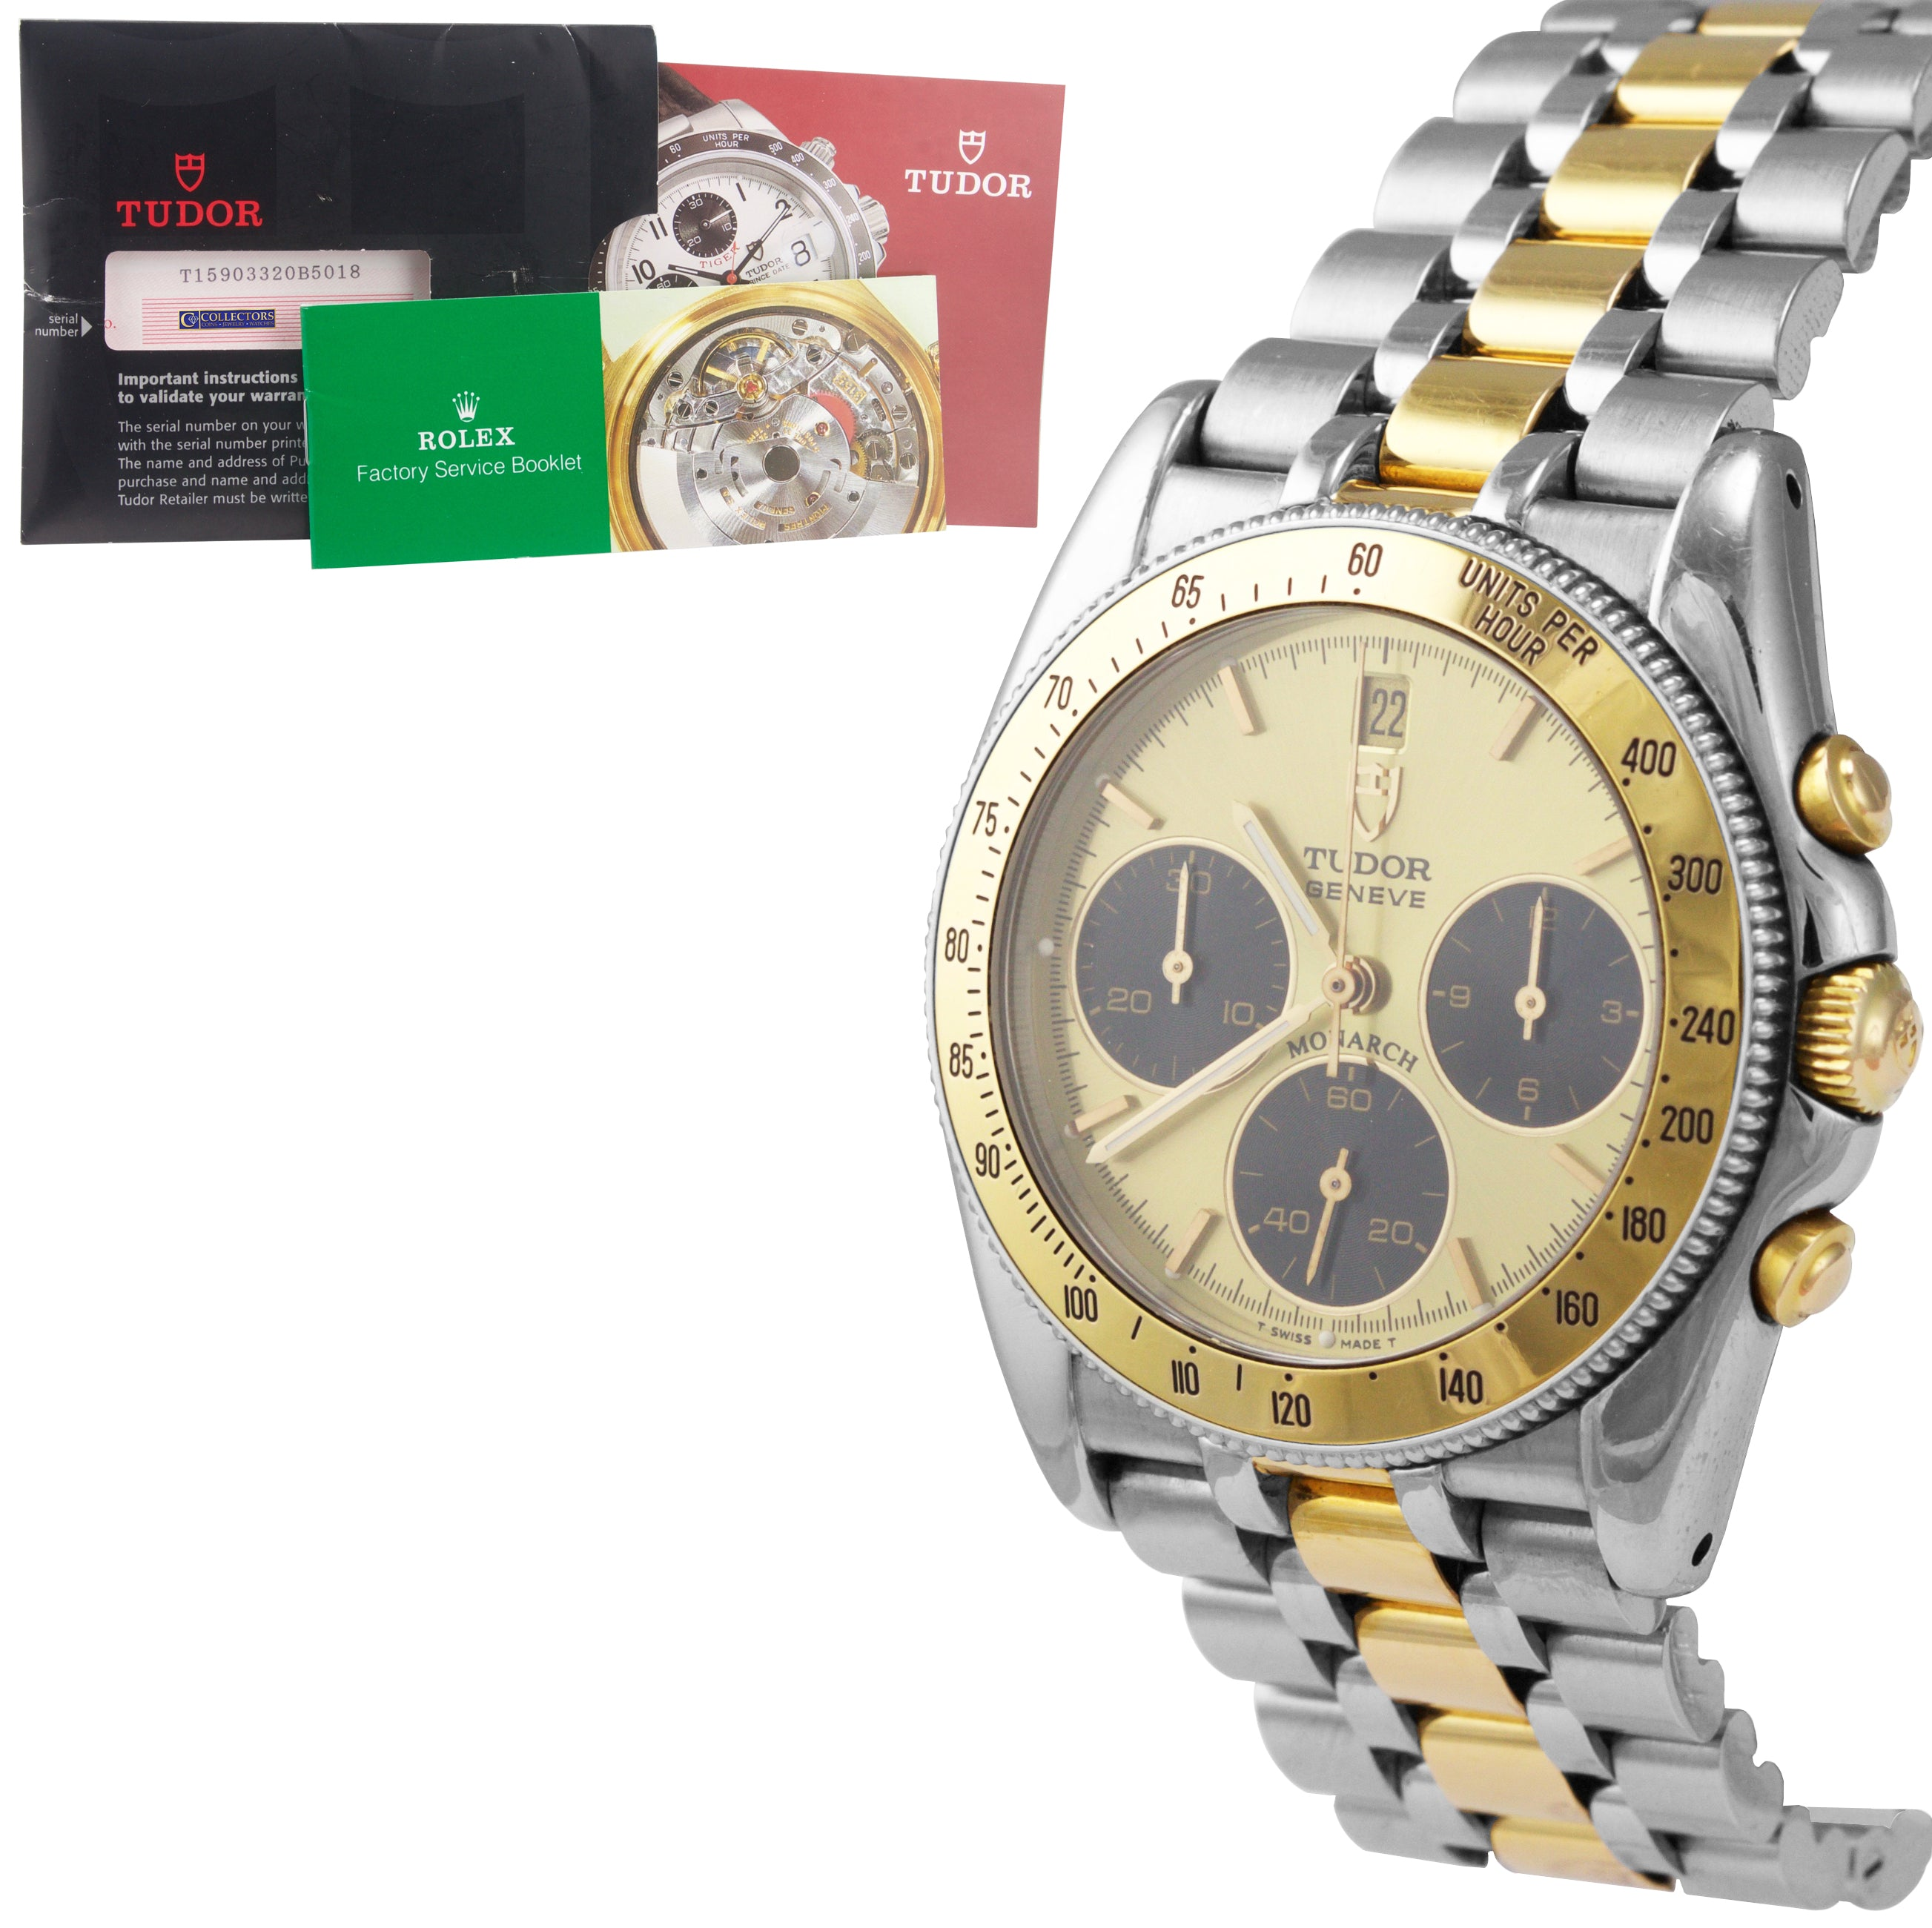 2000 Tudor Geneve Monarch Two-Tone Stainless Gold Chronograph 36mm Watch 15903